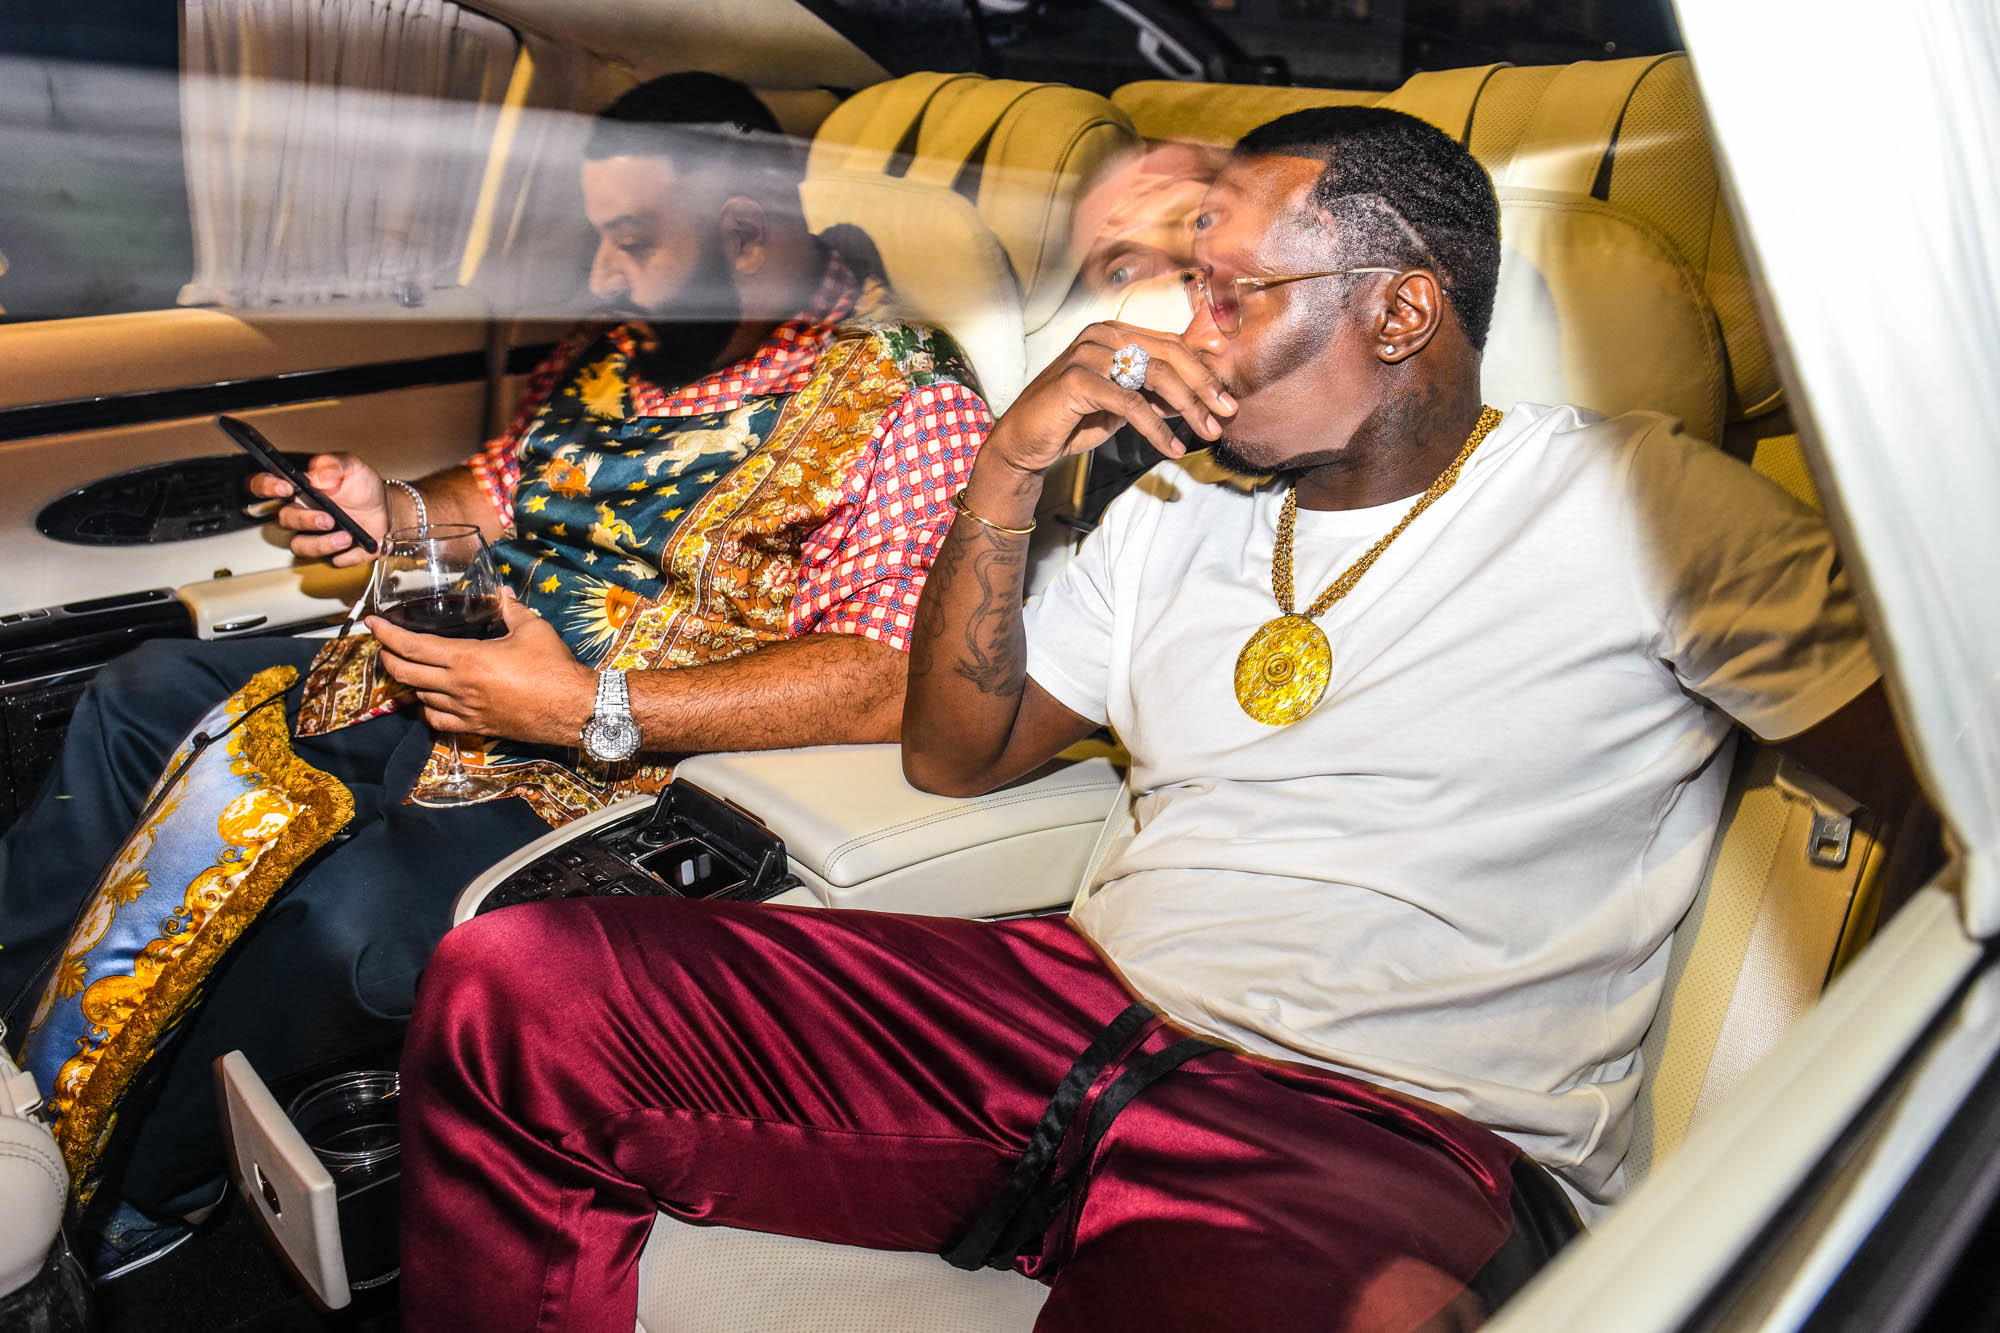 Atlanta's Music Midtown After Party Hosted by P-Diddy and DJ Khaled at club Compound.